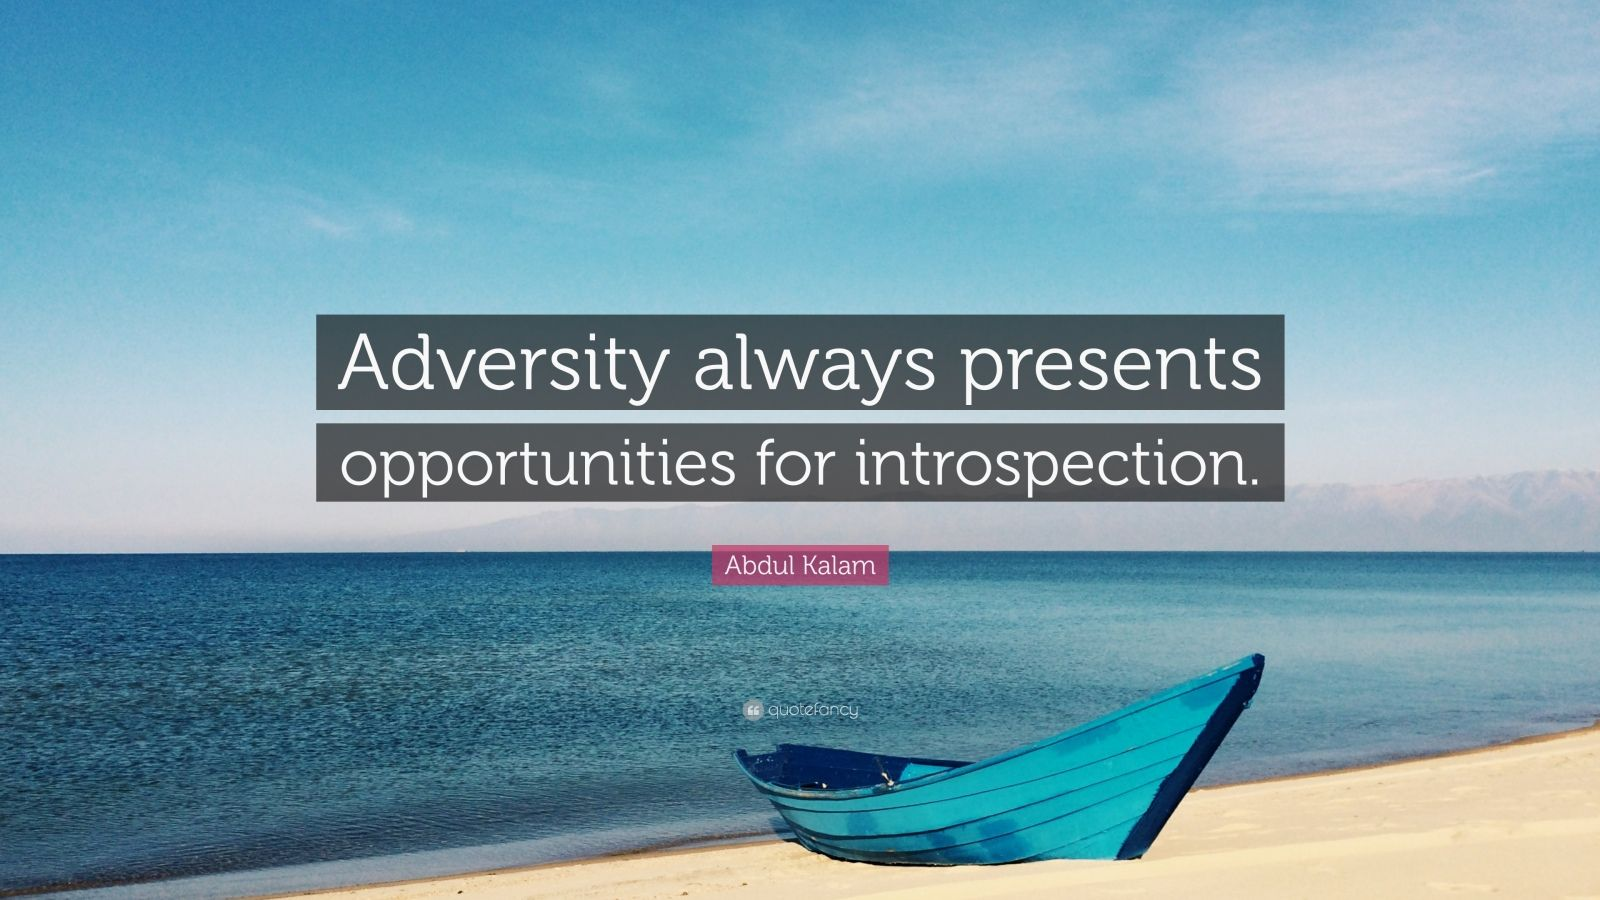 """Abdul Kalam Quote: """"Adversity always presents opportunities for introspection."""""""